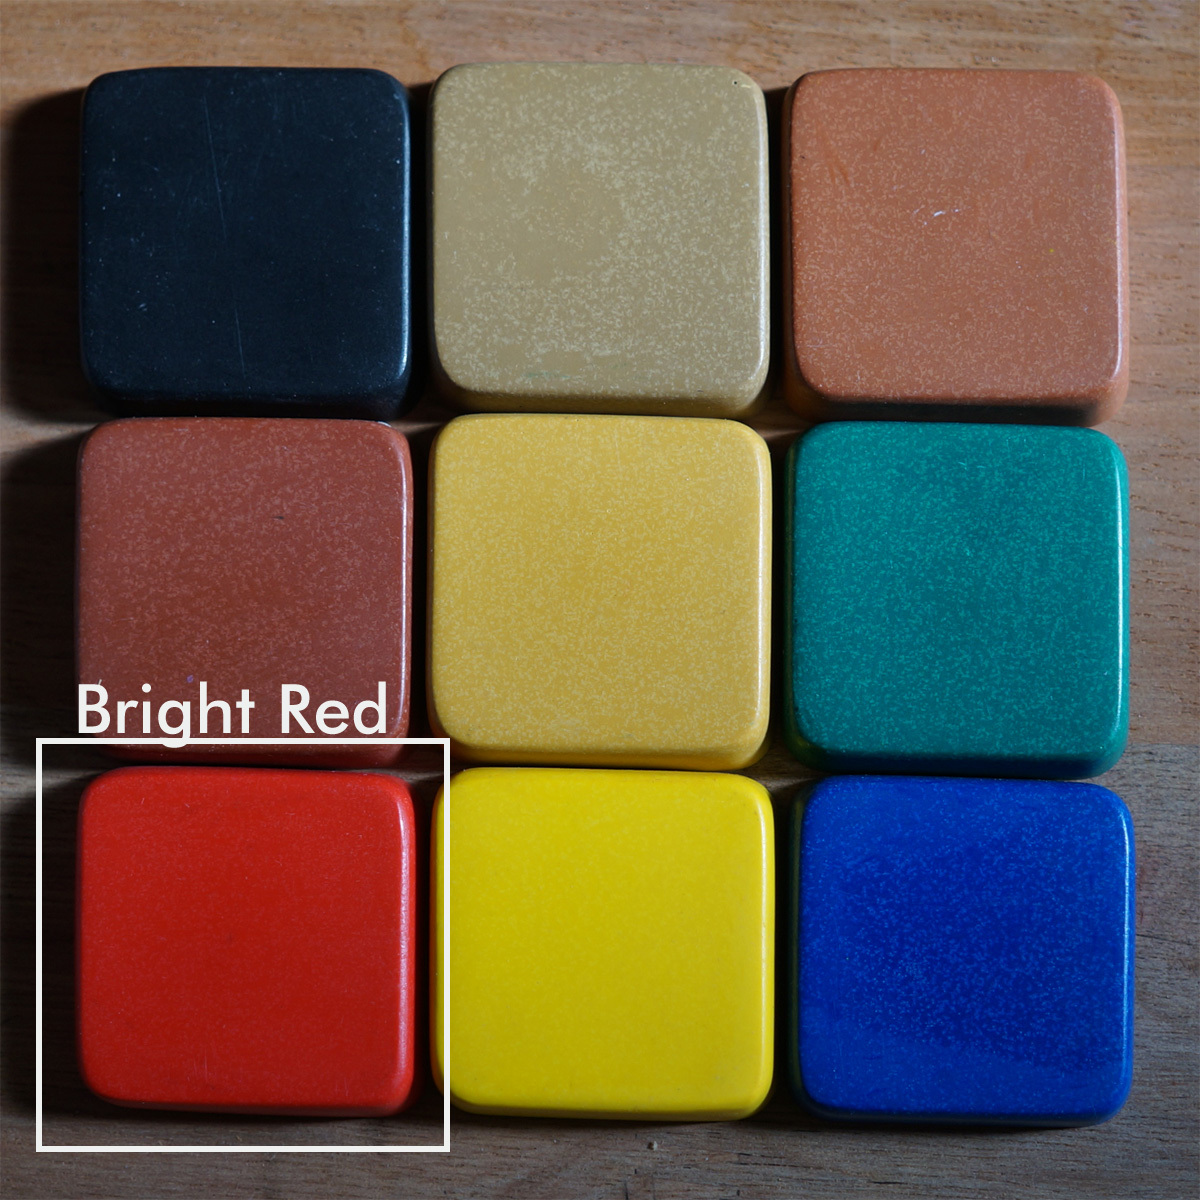 PIGMENT BRIGHT RED 200g(着色剤:赤 200g) - 画像2